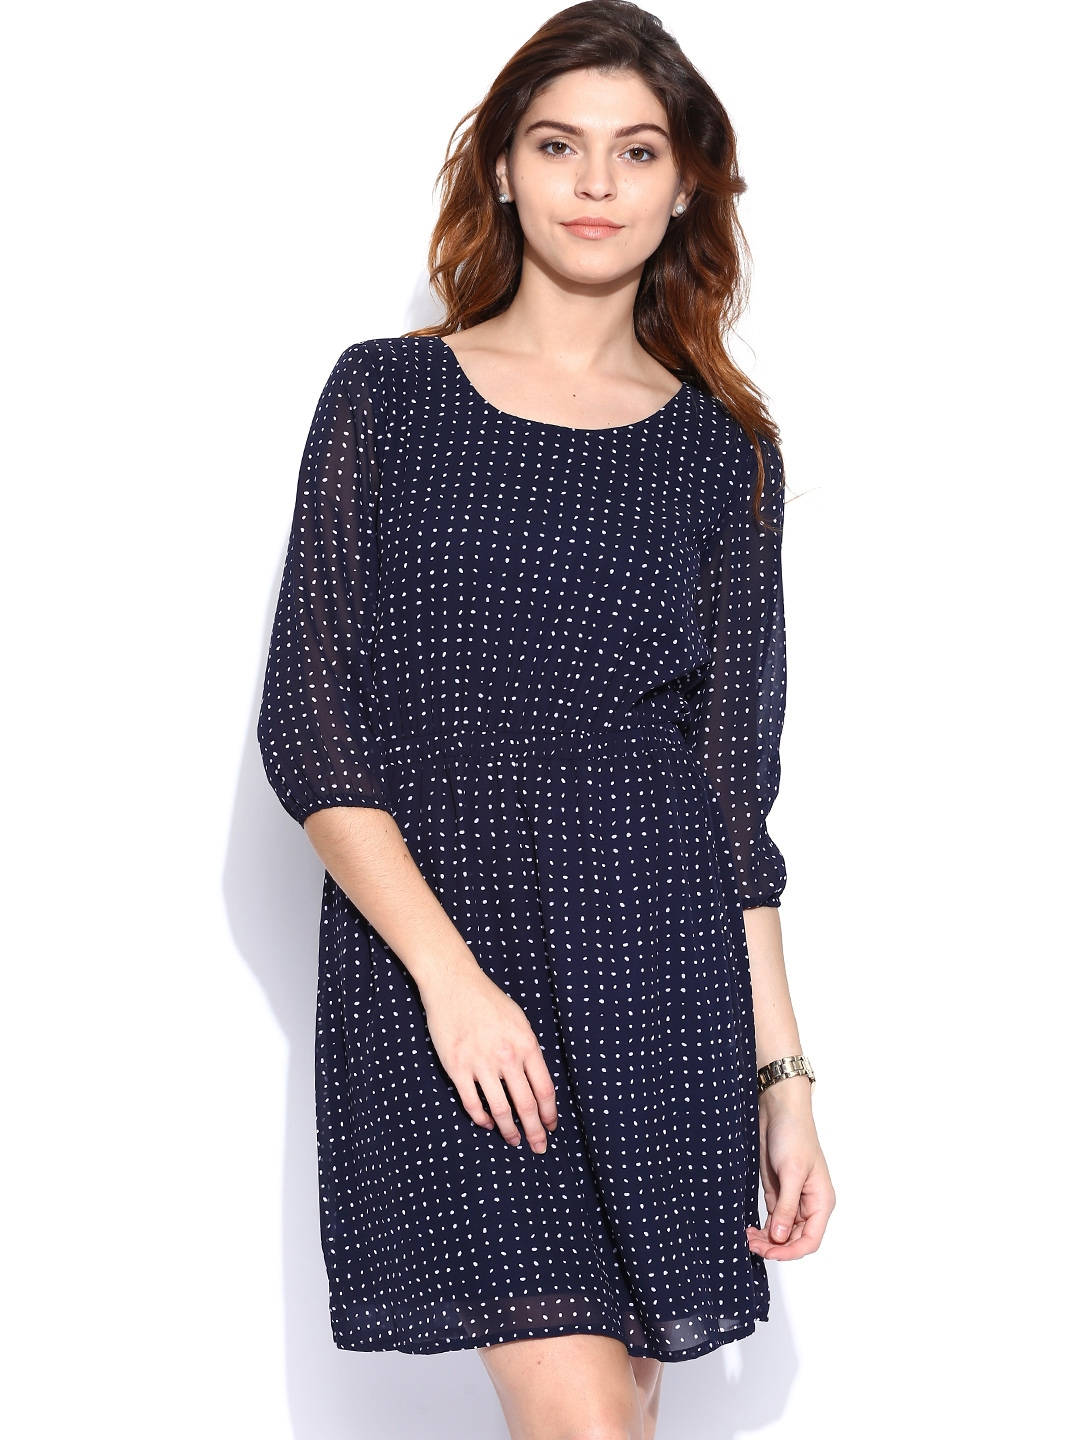 Awesome Home Clothing Women Clothing Dresses Van Heusen Woman Dresses